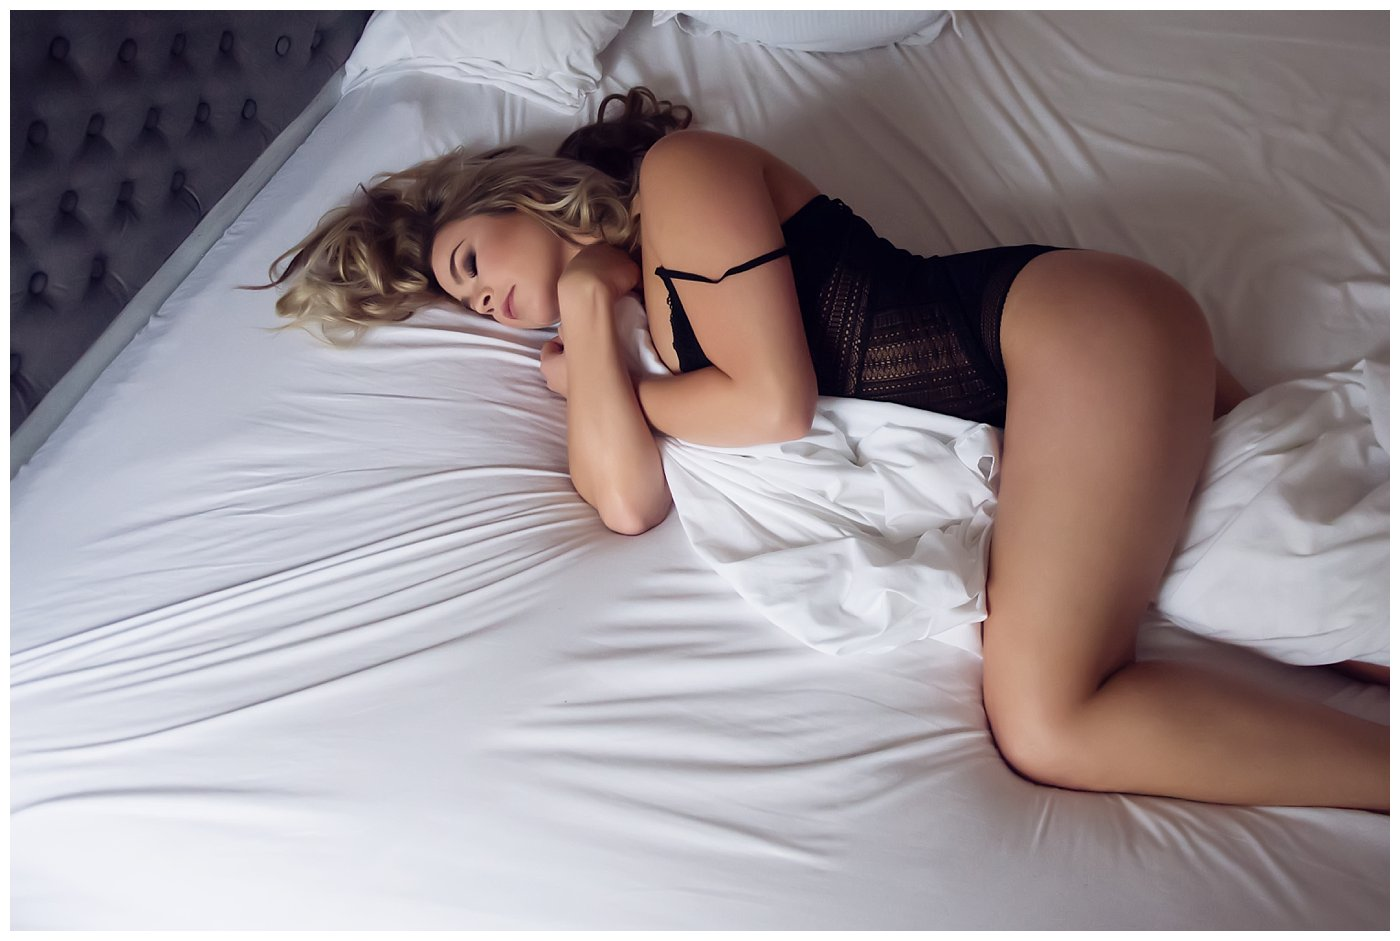 http://www.boudoirwithmary.com/wp-content/uploads/2018/01/2018-01-10_0014.jpg